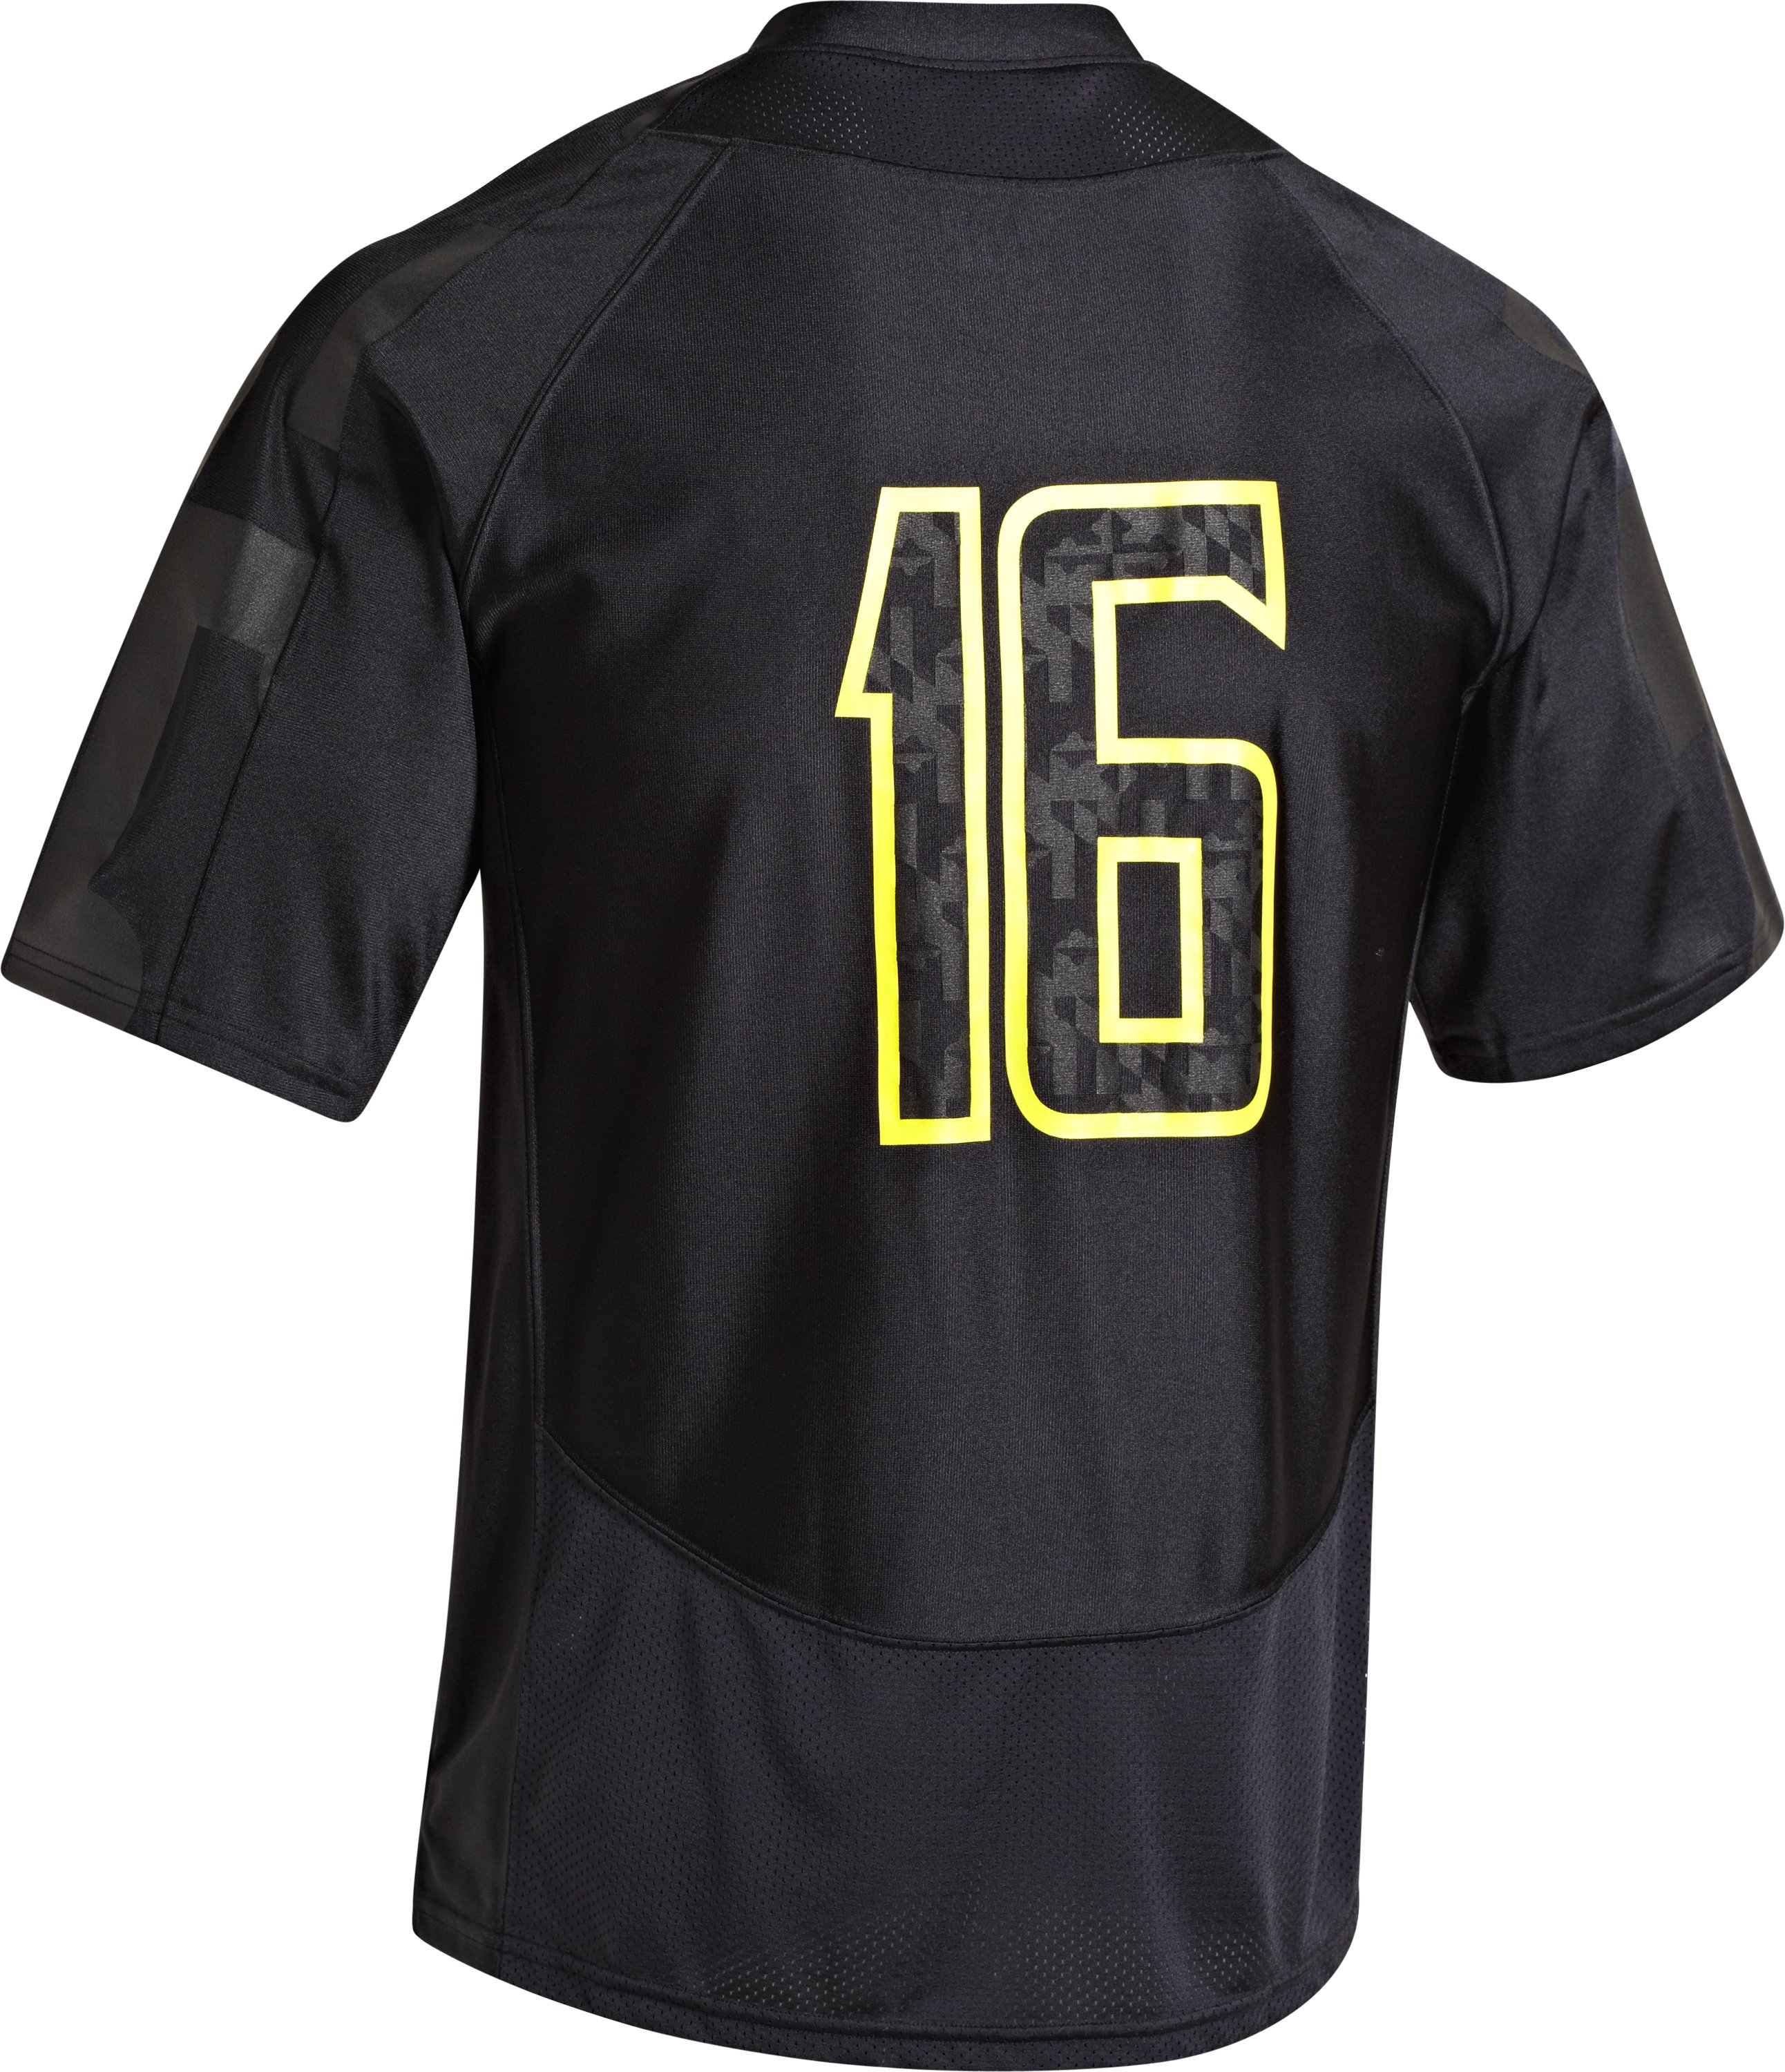 Men's UA Maryland Black Ops Replica Jersey, Black